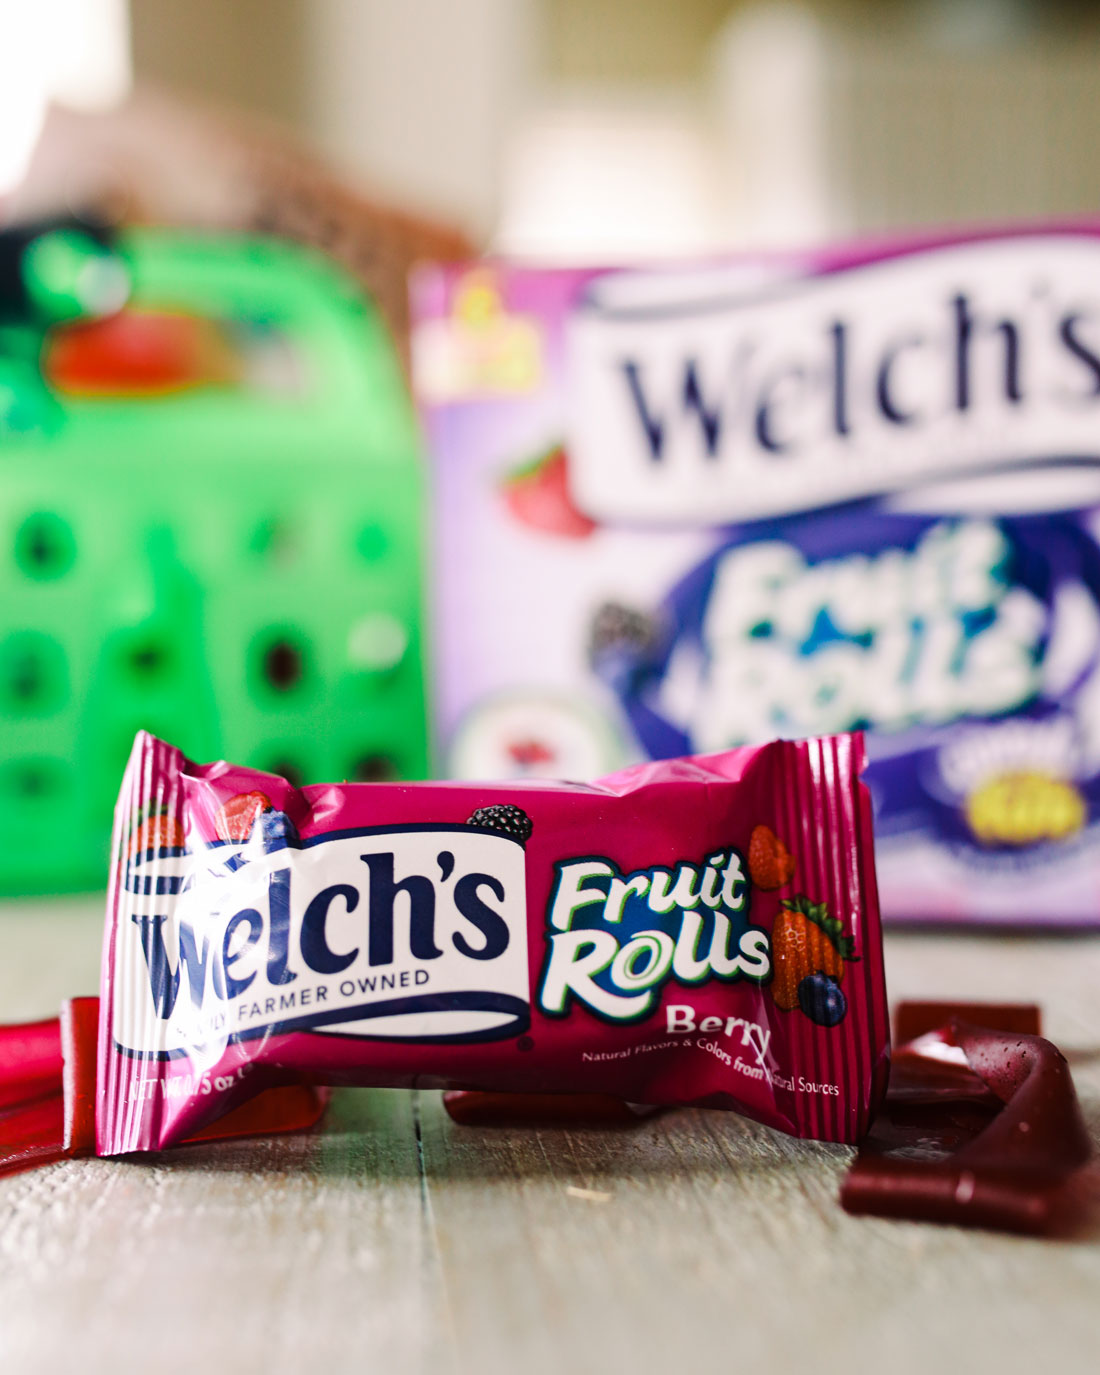 Welch's Fruit rolls! The ultimate road trip snack